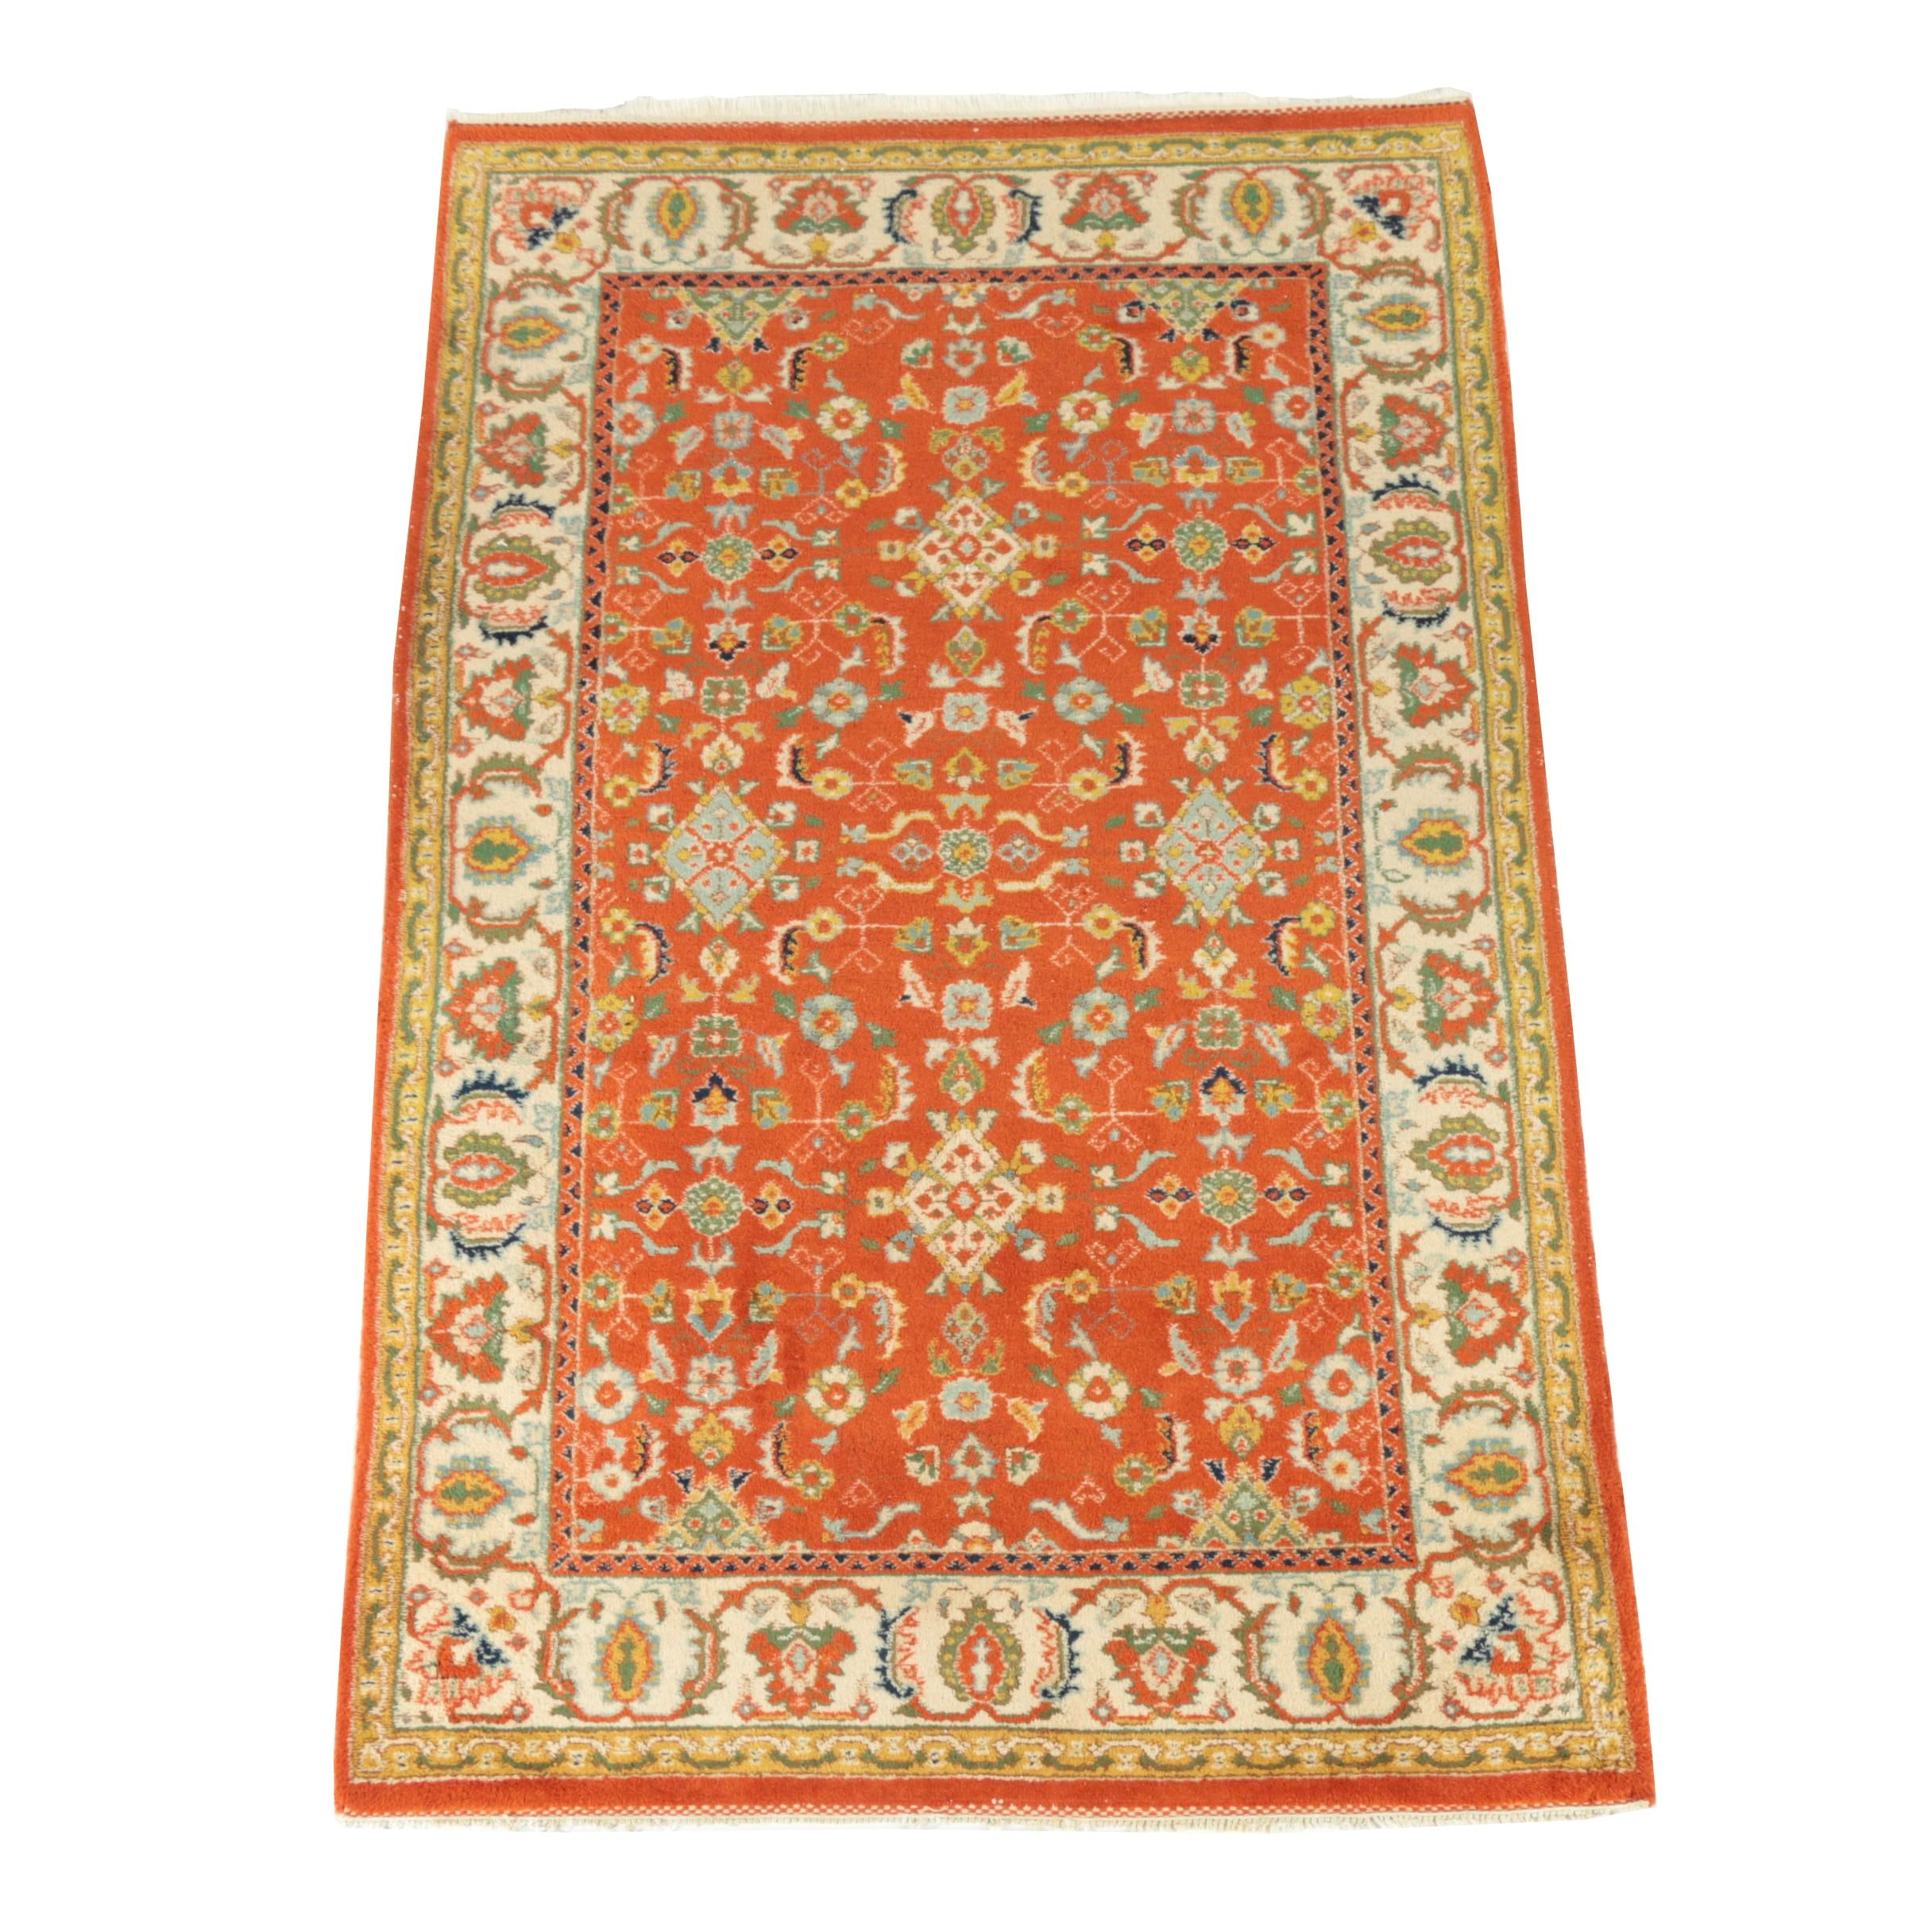 Hand-Knotted Indian Wool Area Rug